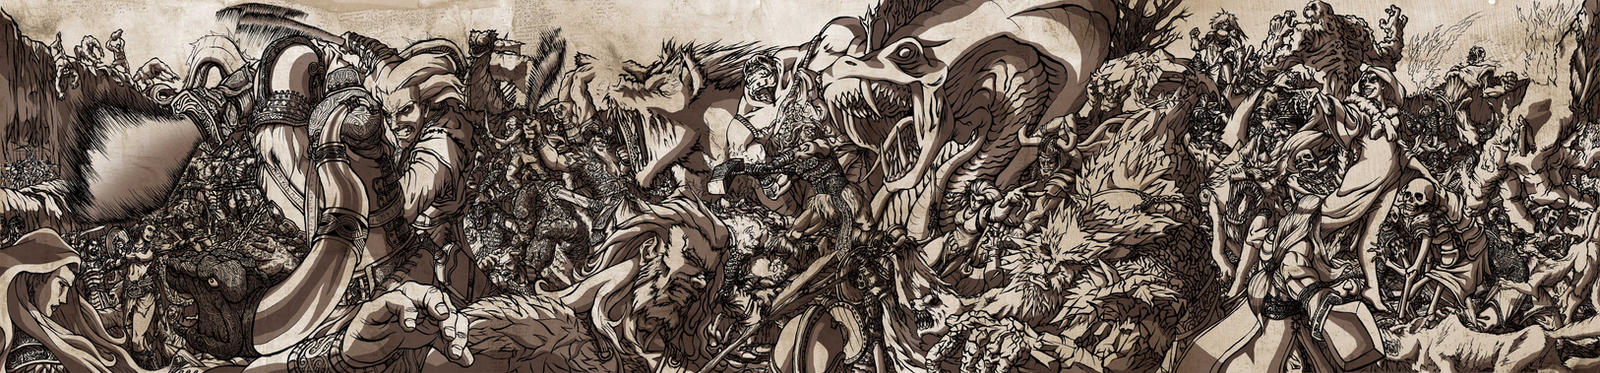 Part 14 / 8 - Page 2 Ragnarok_Sepia_Grayscale_by_Apep_Sutech